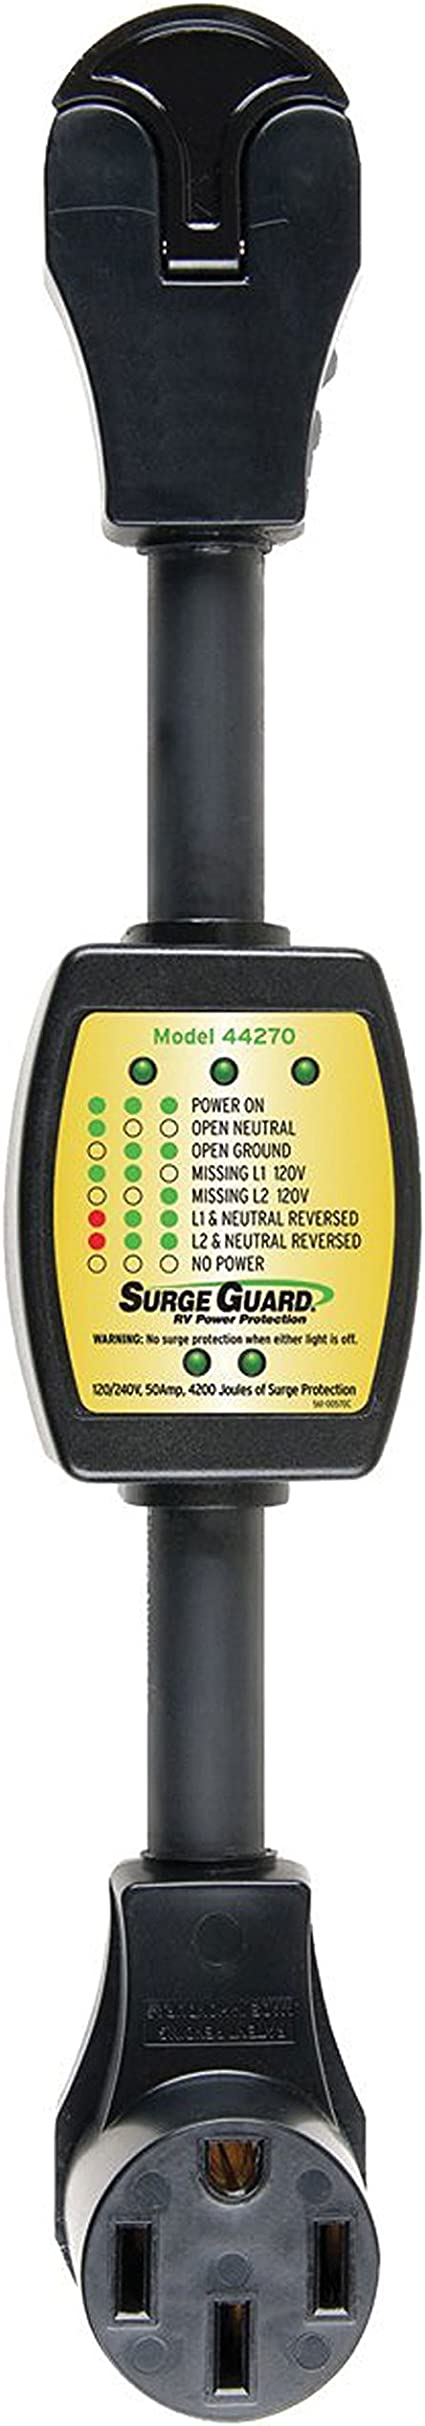 Surge Guard 44260 Entry Level Portable Surge Protector 30 Amp